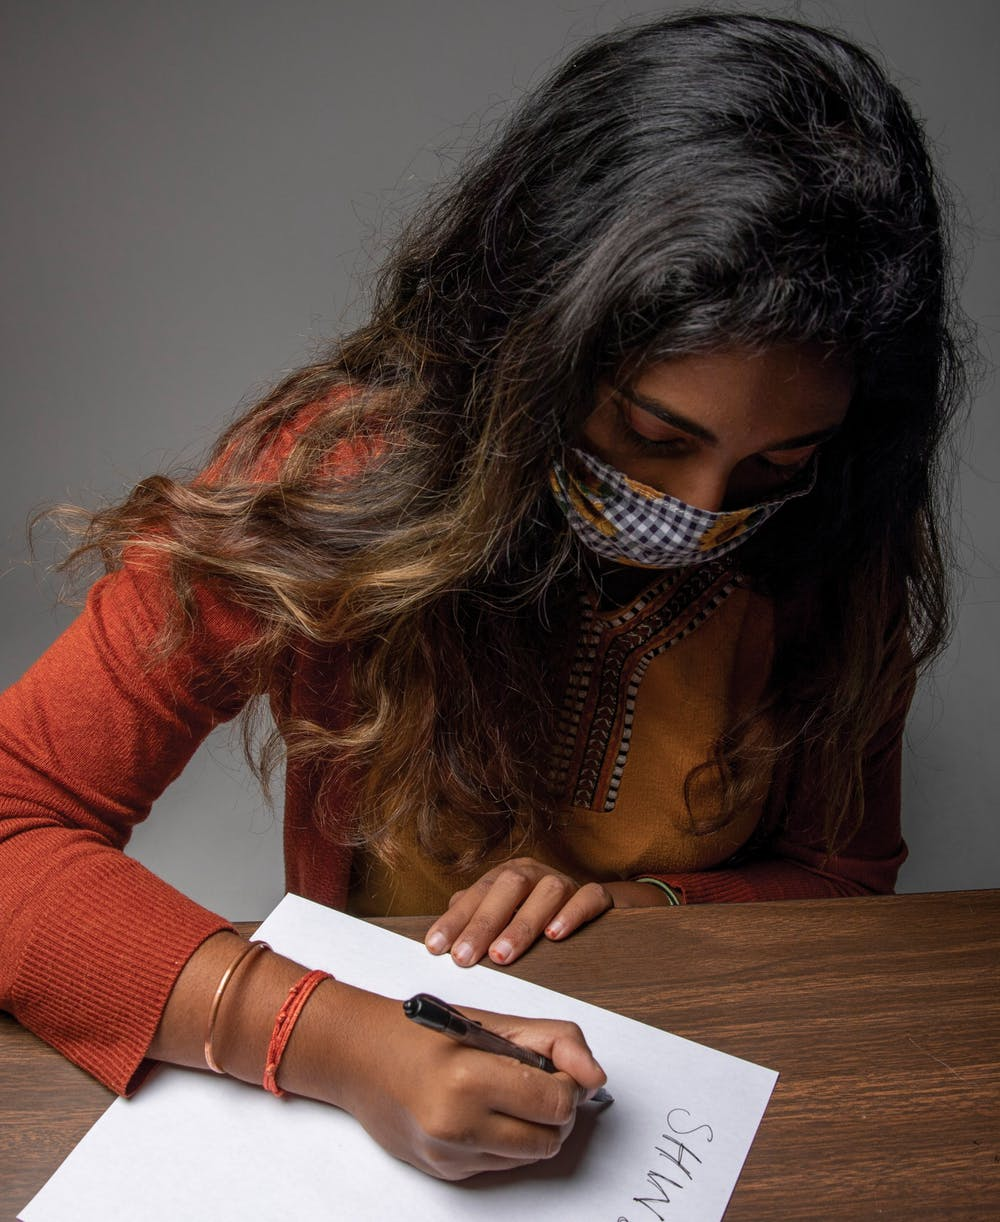 <p>Shwetha Sundarrajan writes down misspellings of her name Nov. 3, 2020, in the photojournalism studio. Throughout Sundarrajan's life, her name has been misspelled and misspoken. <strong>Jacob Musselman, DN Illustration</strong></p>